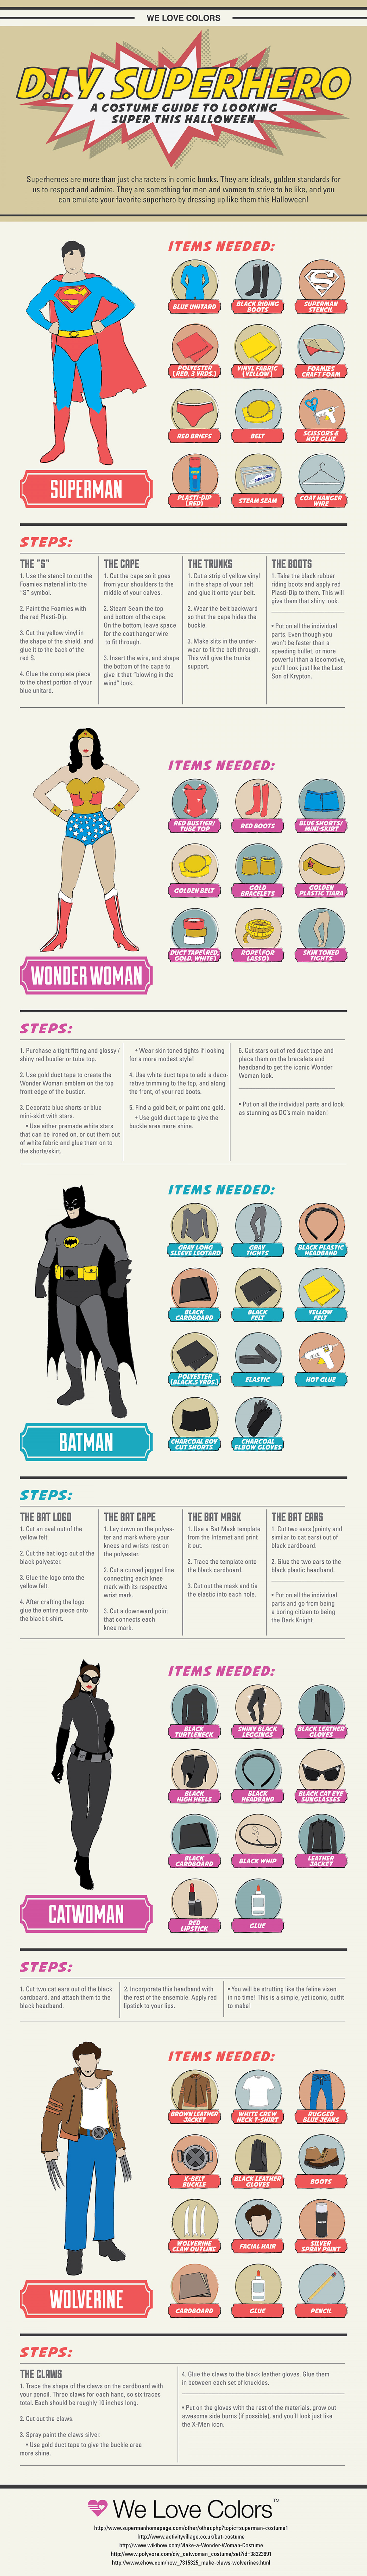 Do It Yourself Superhero Costumes Infographic